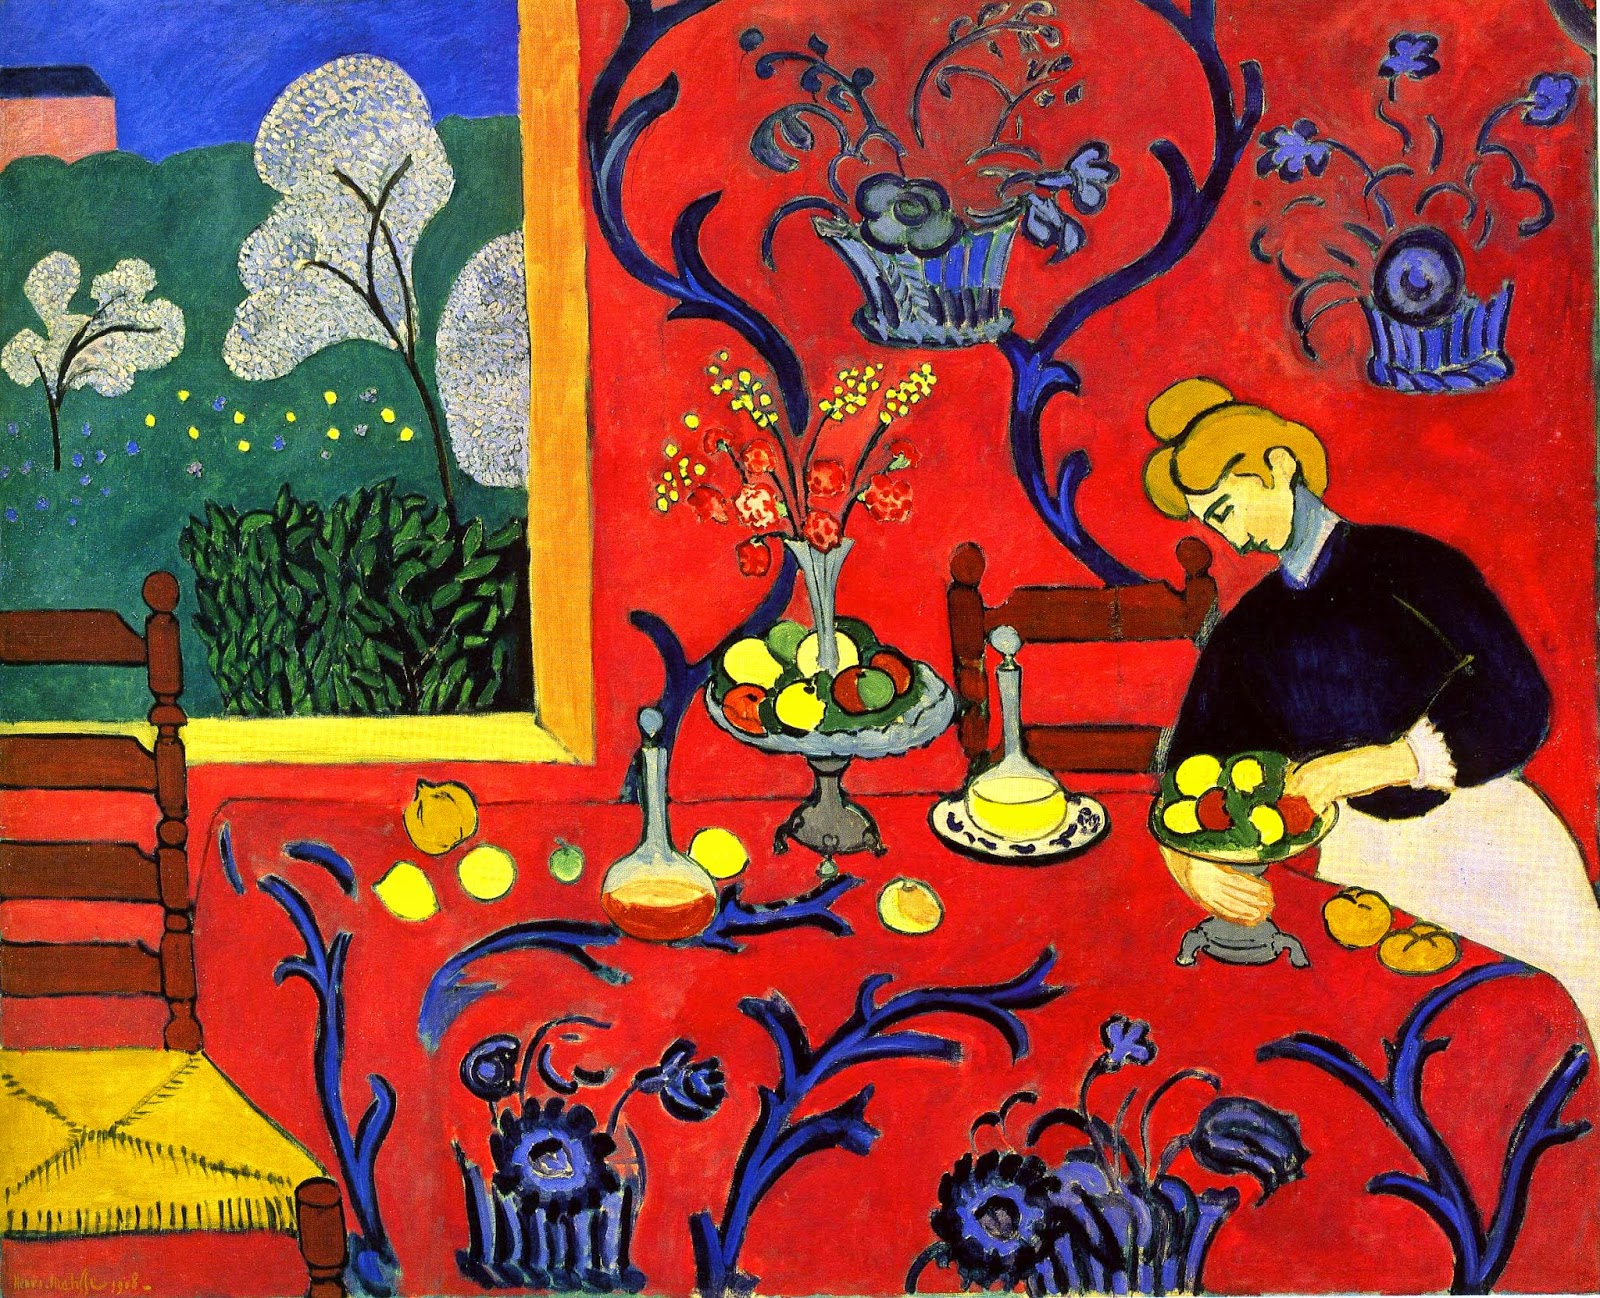 henri matisse and modernism Henri matisse was born in le cateau-cambrésis, nord, france, the oldest son of a prosperous grain merchant in 1887 he went to paris to study law, working as a court administrator in le cateau-cambrésis after gaining his qualification.